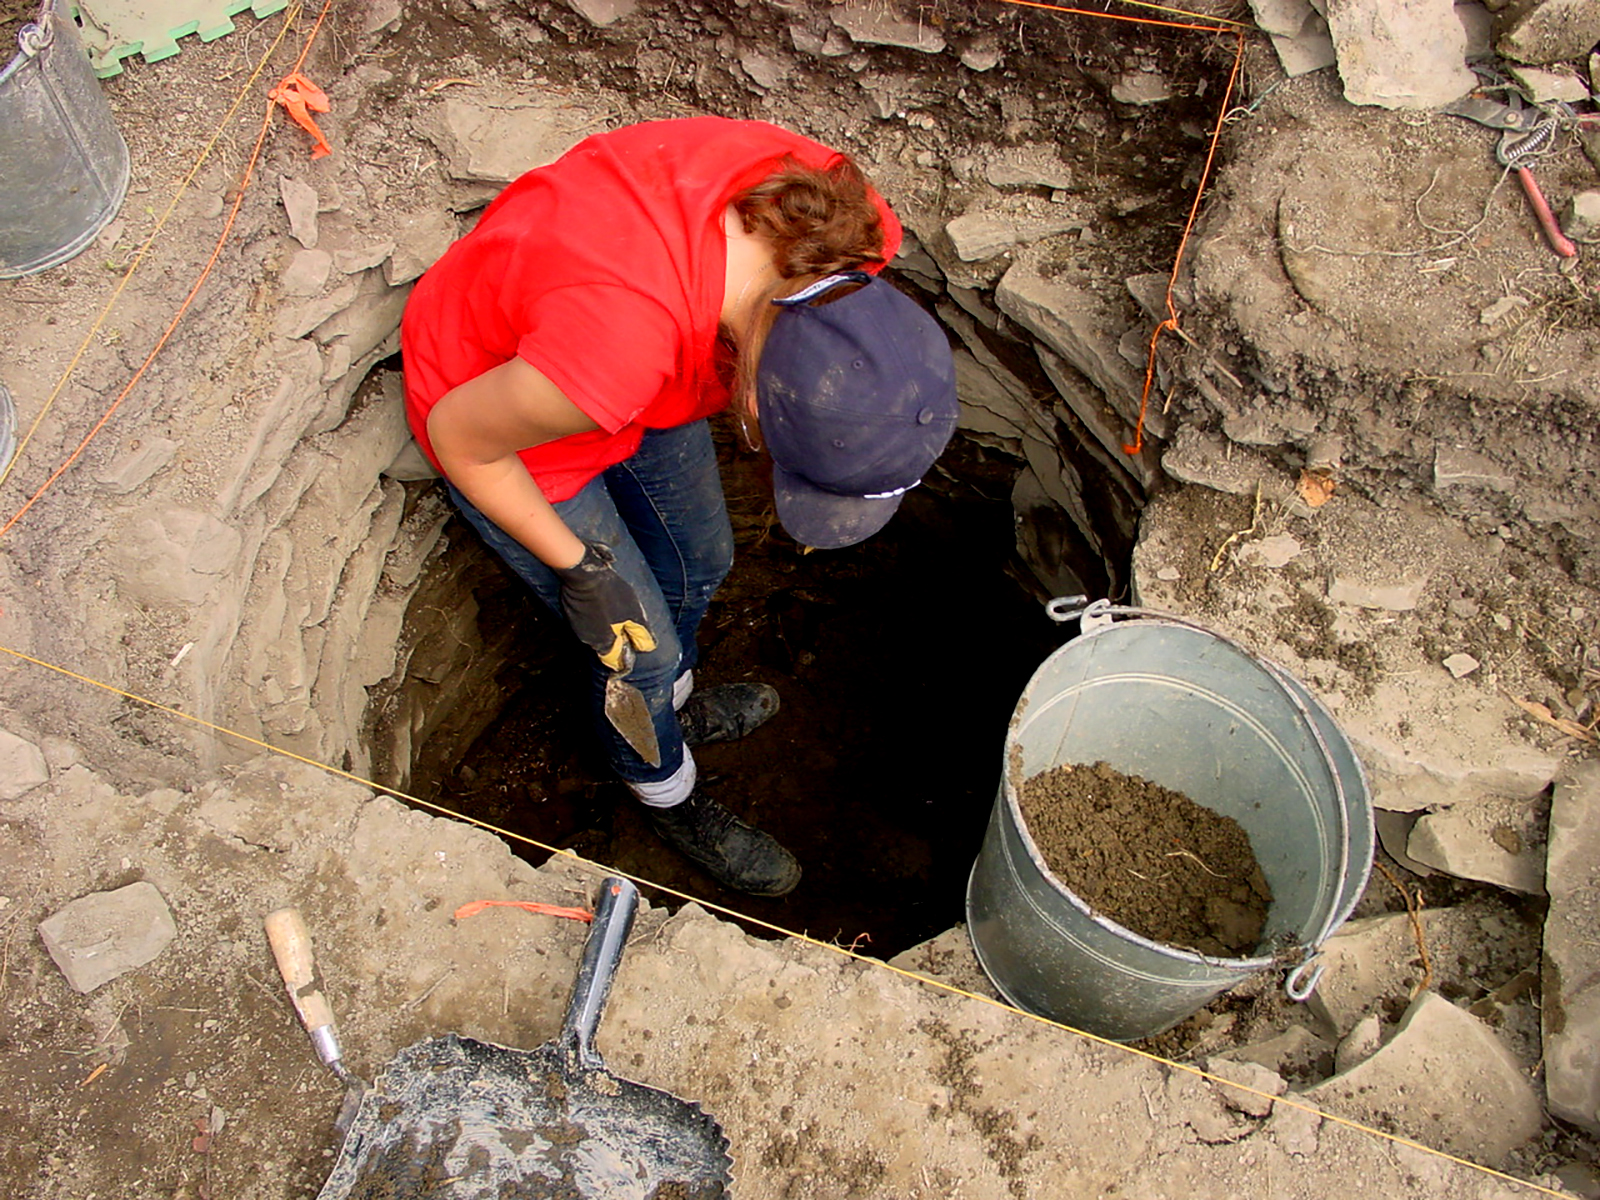 Excavating earth and rocks in well as water begins to seep in from below